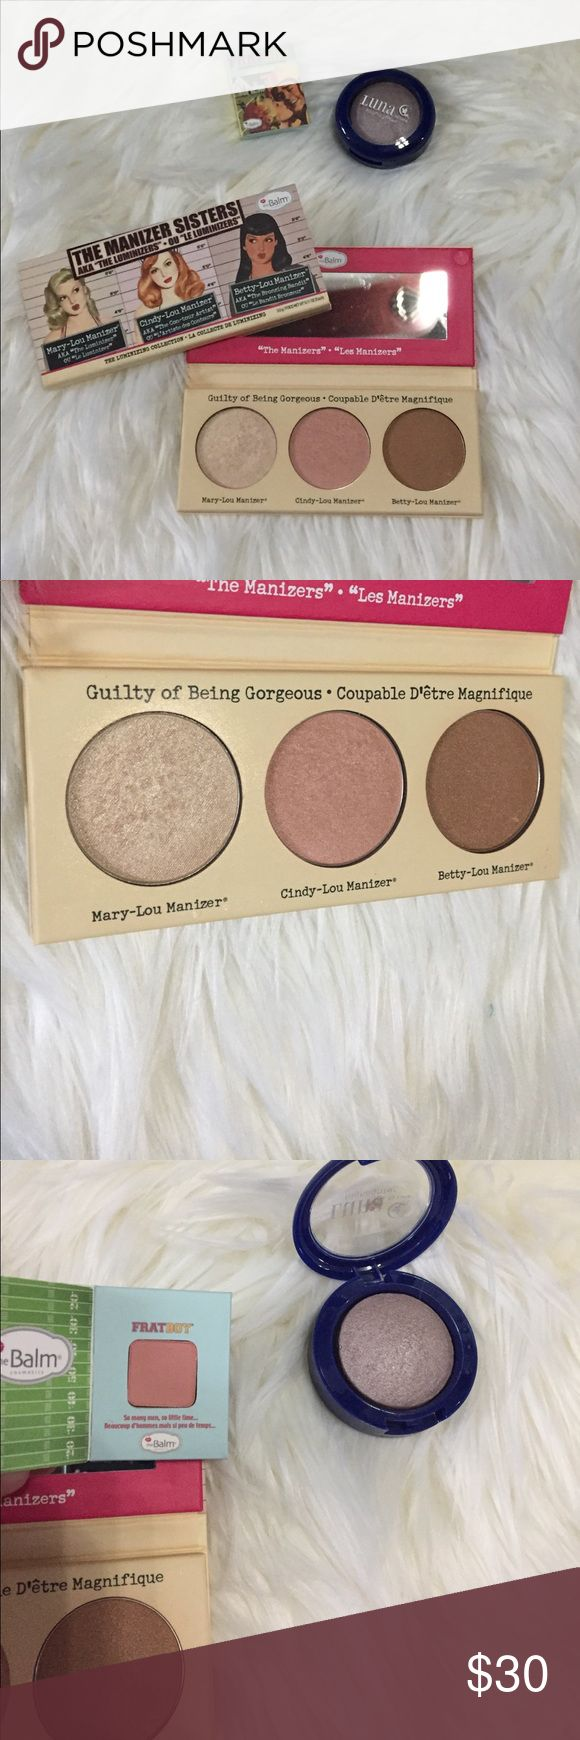 The Balm Manizer Sisters Highlight & Blush Bundle The manizer sister bronzer blush and highlight. Minimally used. 95% there. Luna Cosmetic highlight rose mini. Frat boy blush unused the balm cosmetics Makeup Luminizer